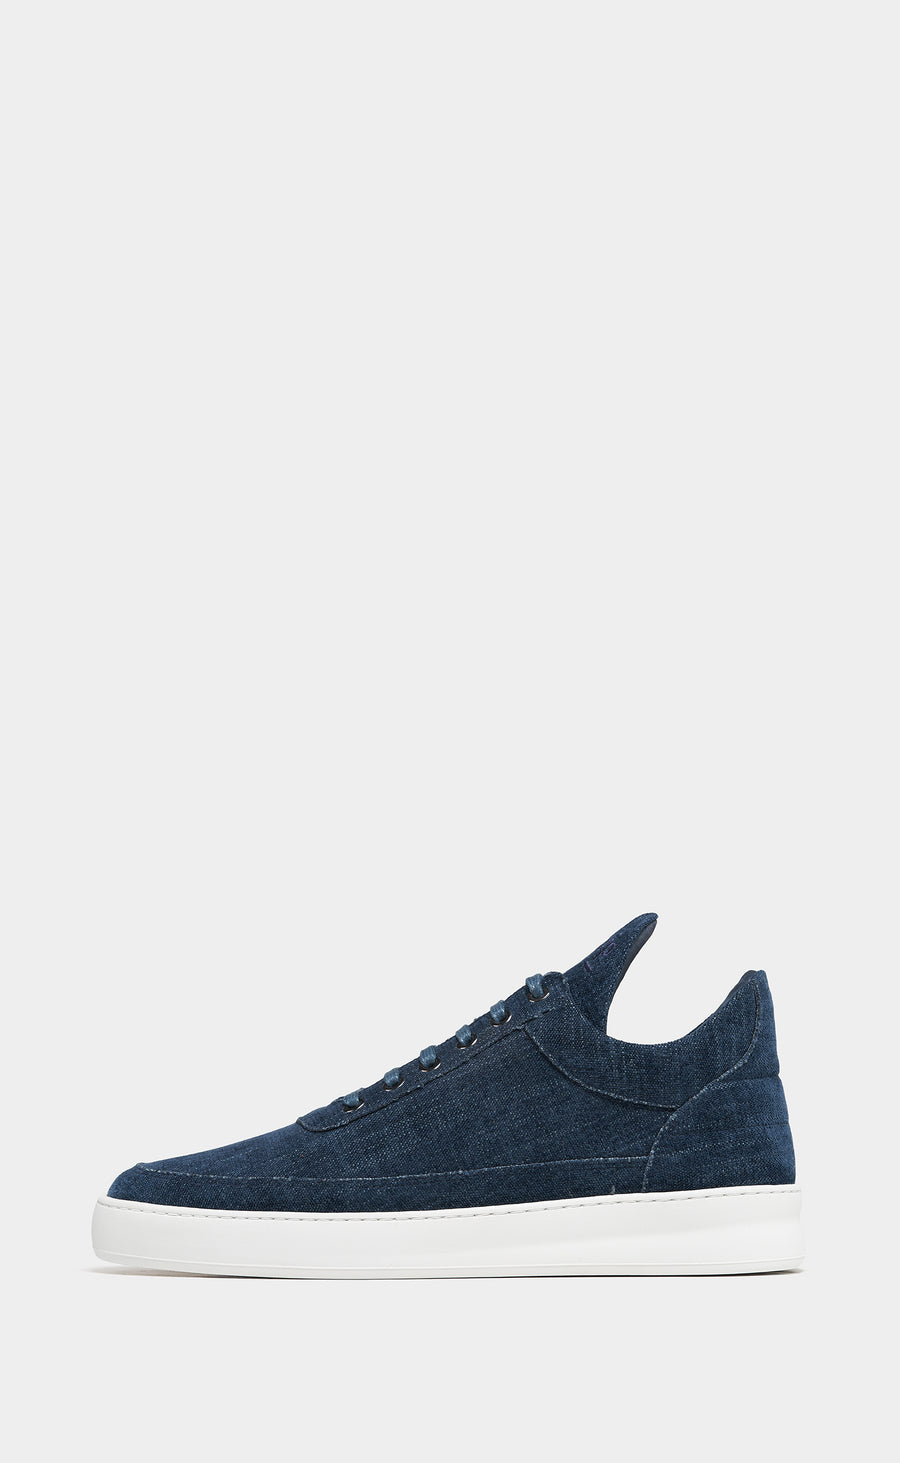 Low Top Plain Vuora Navy Blue